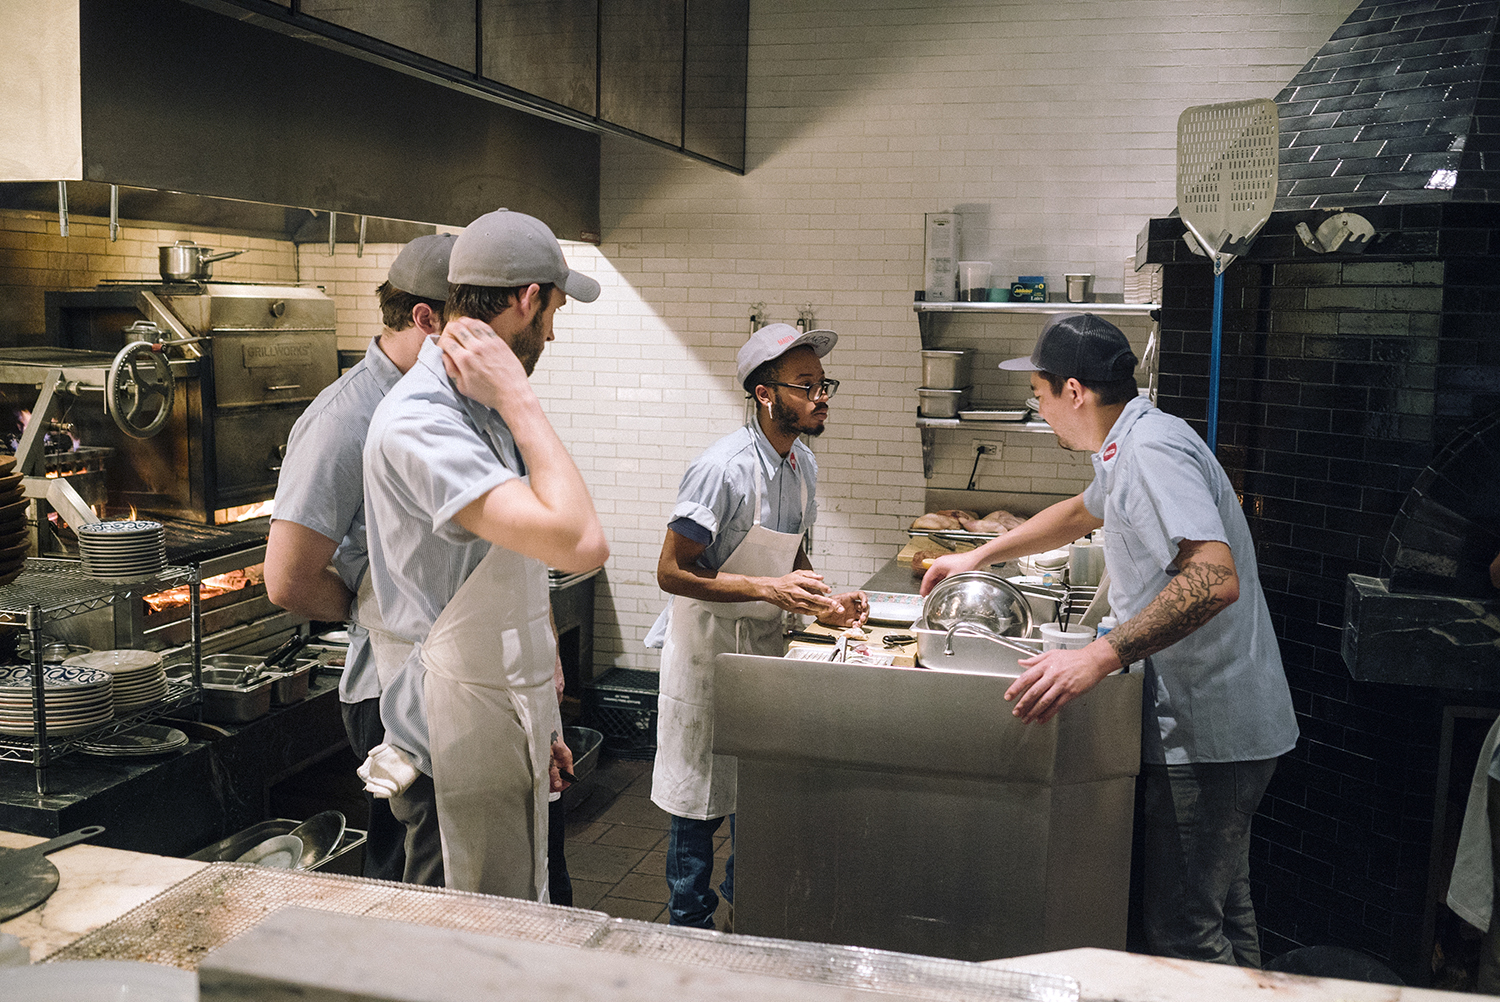 Chef Nick Anderer (far right) instructing his team.